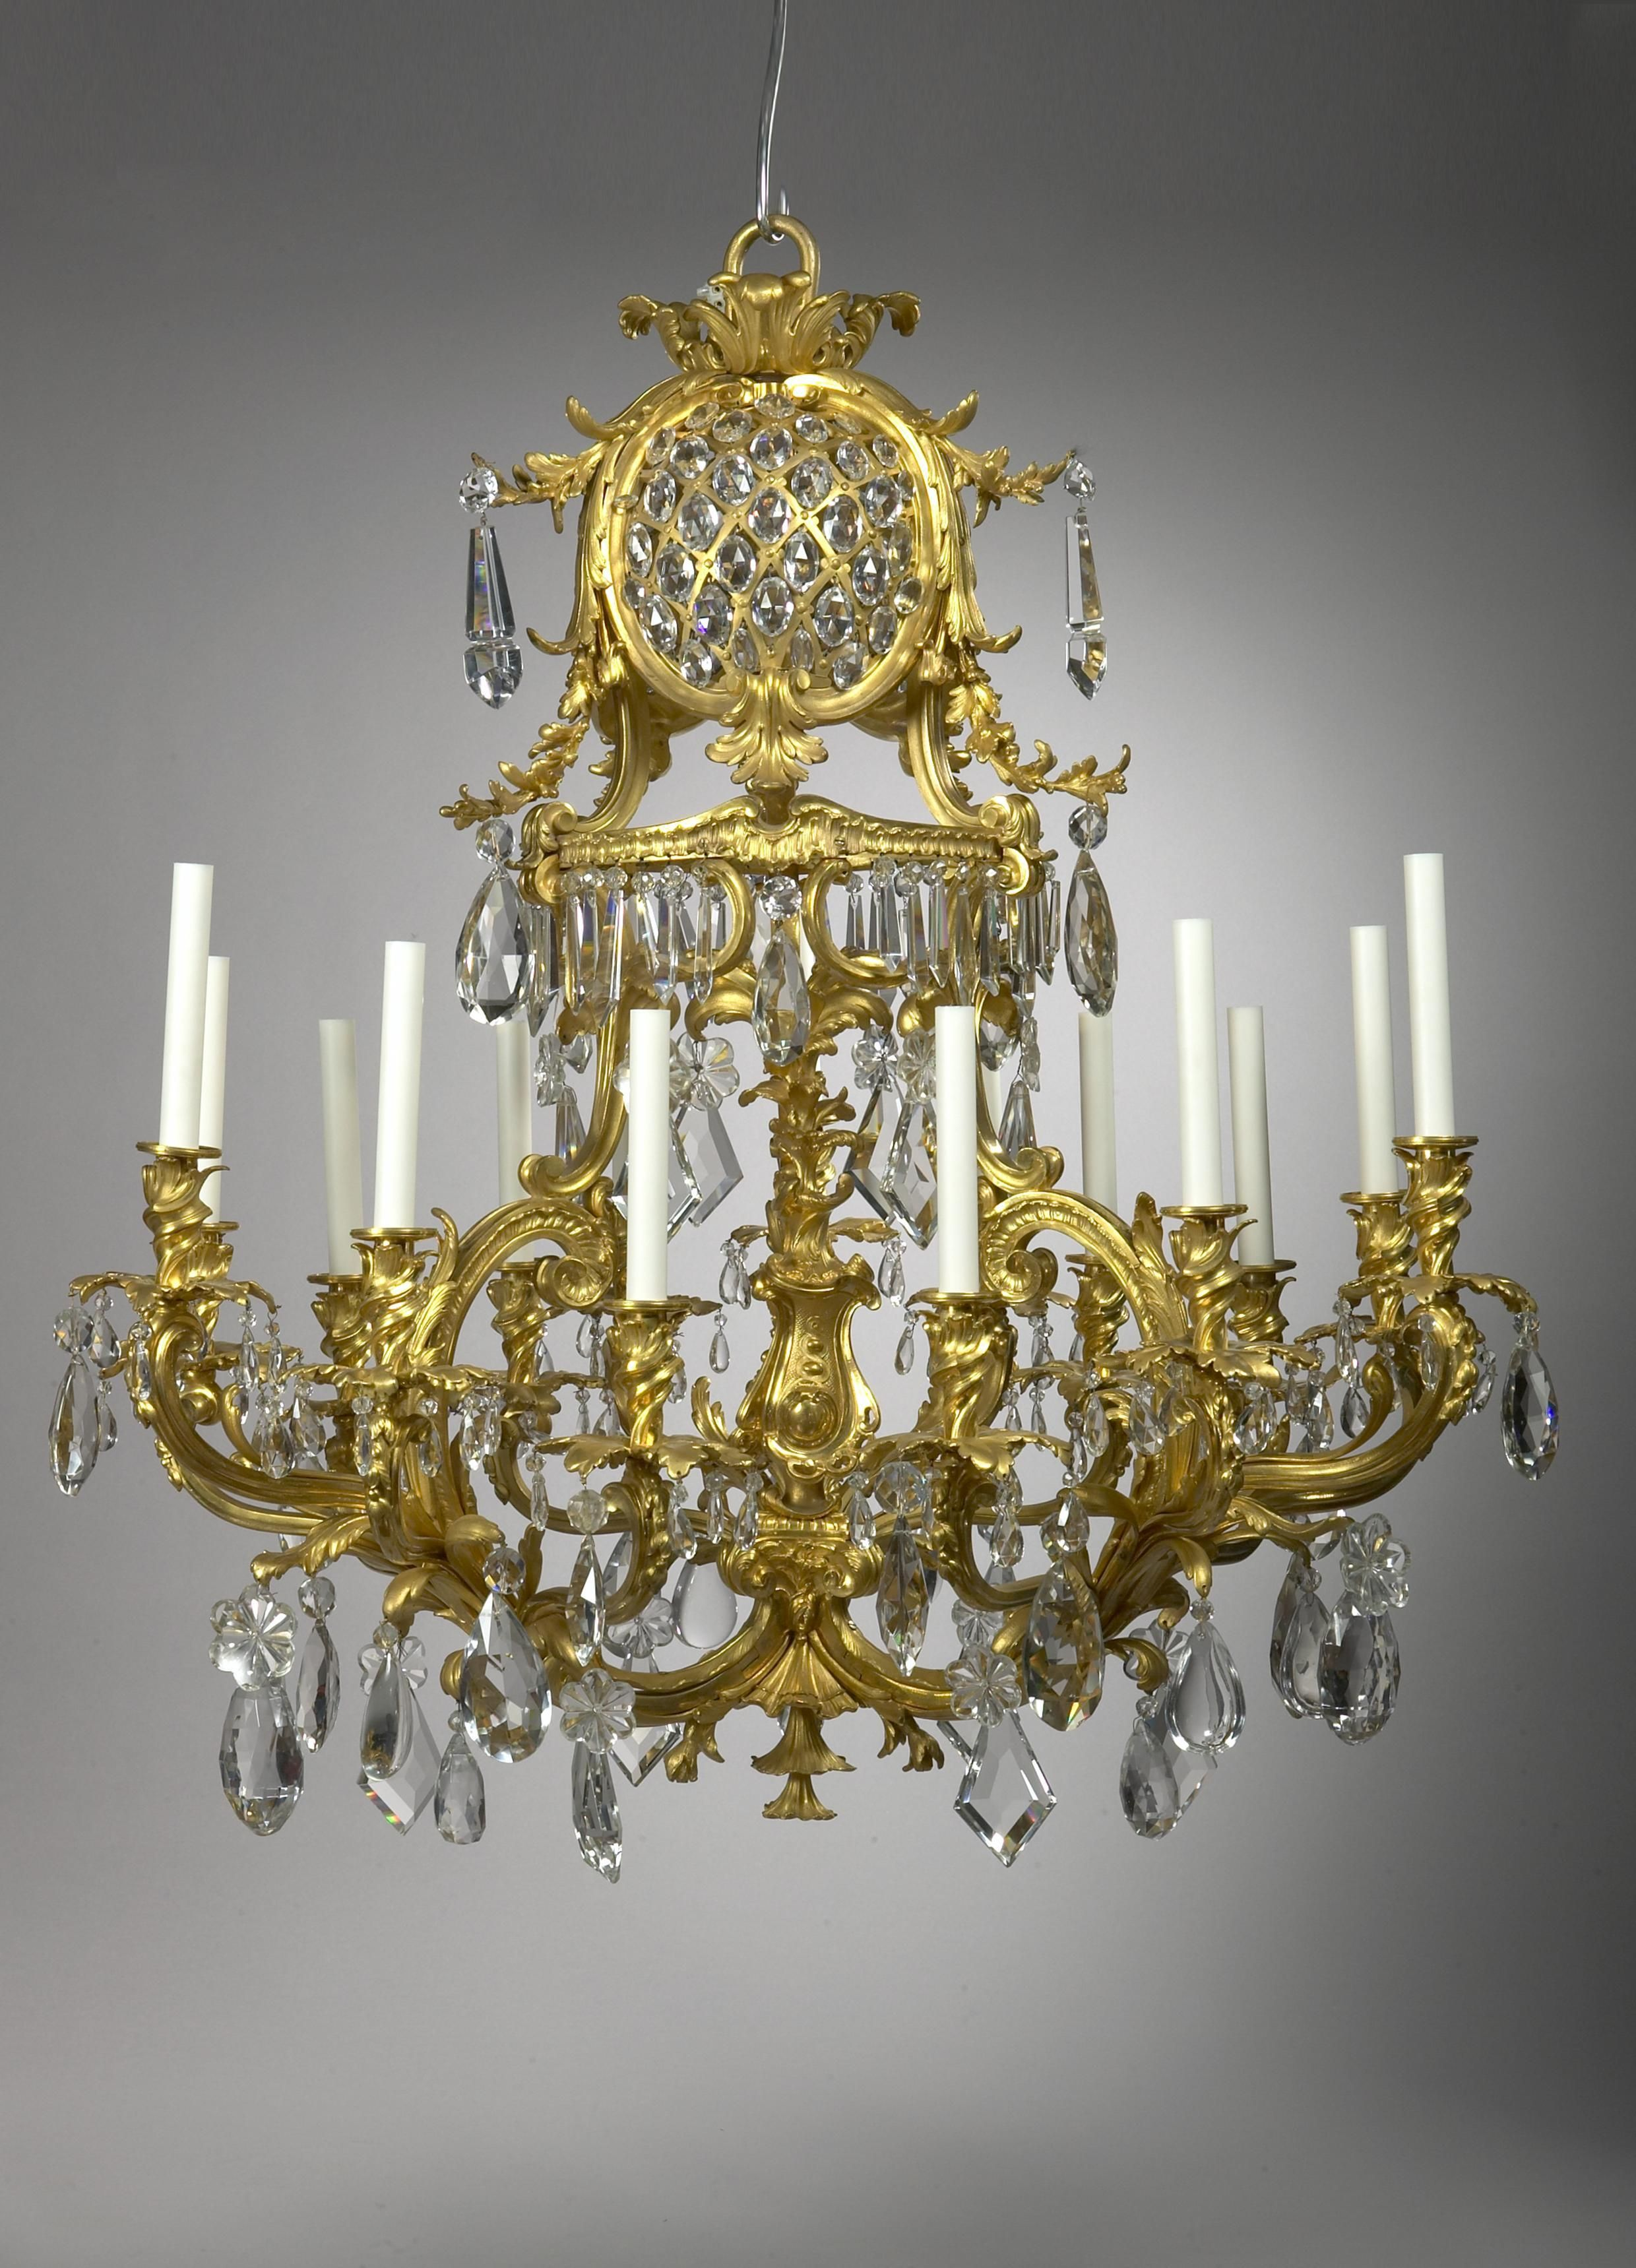 Baccarat crystal Rocaille chandelier